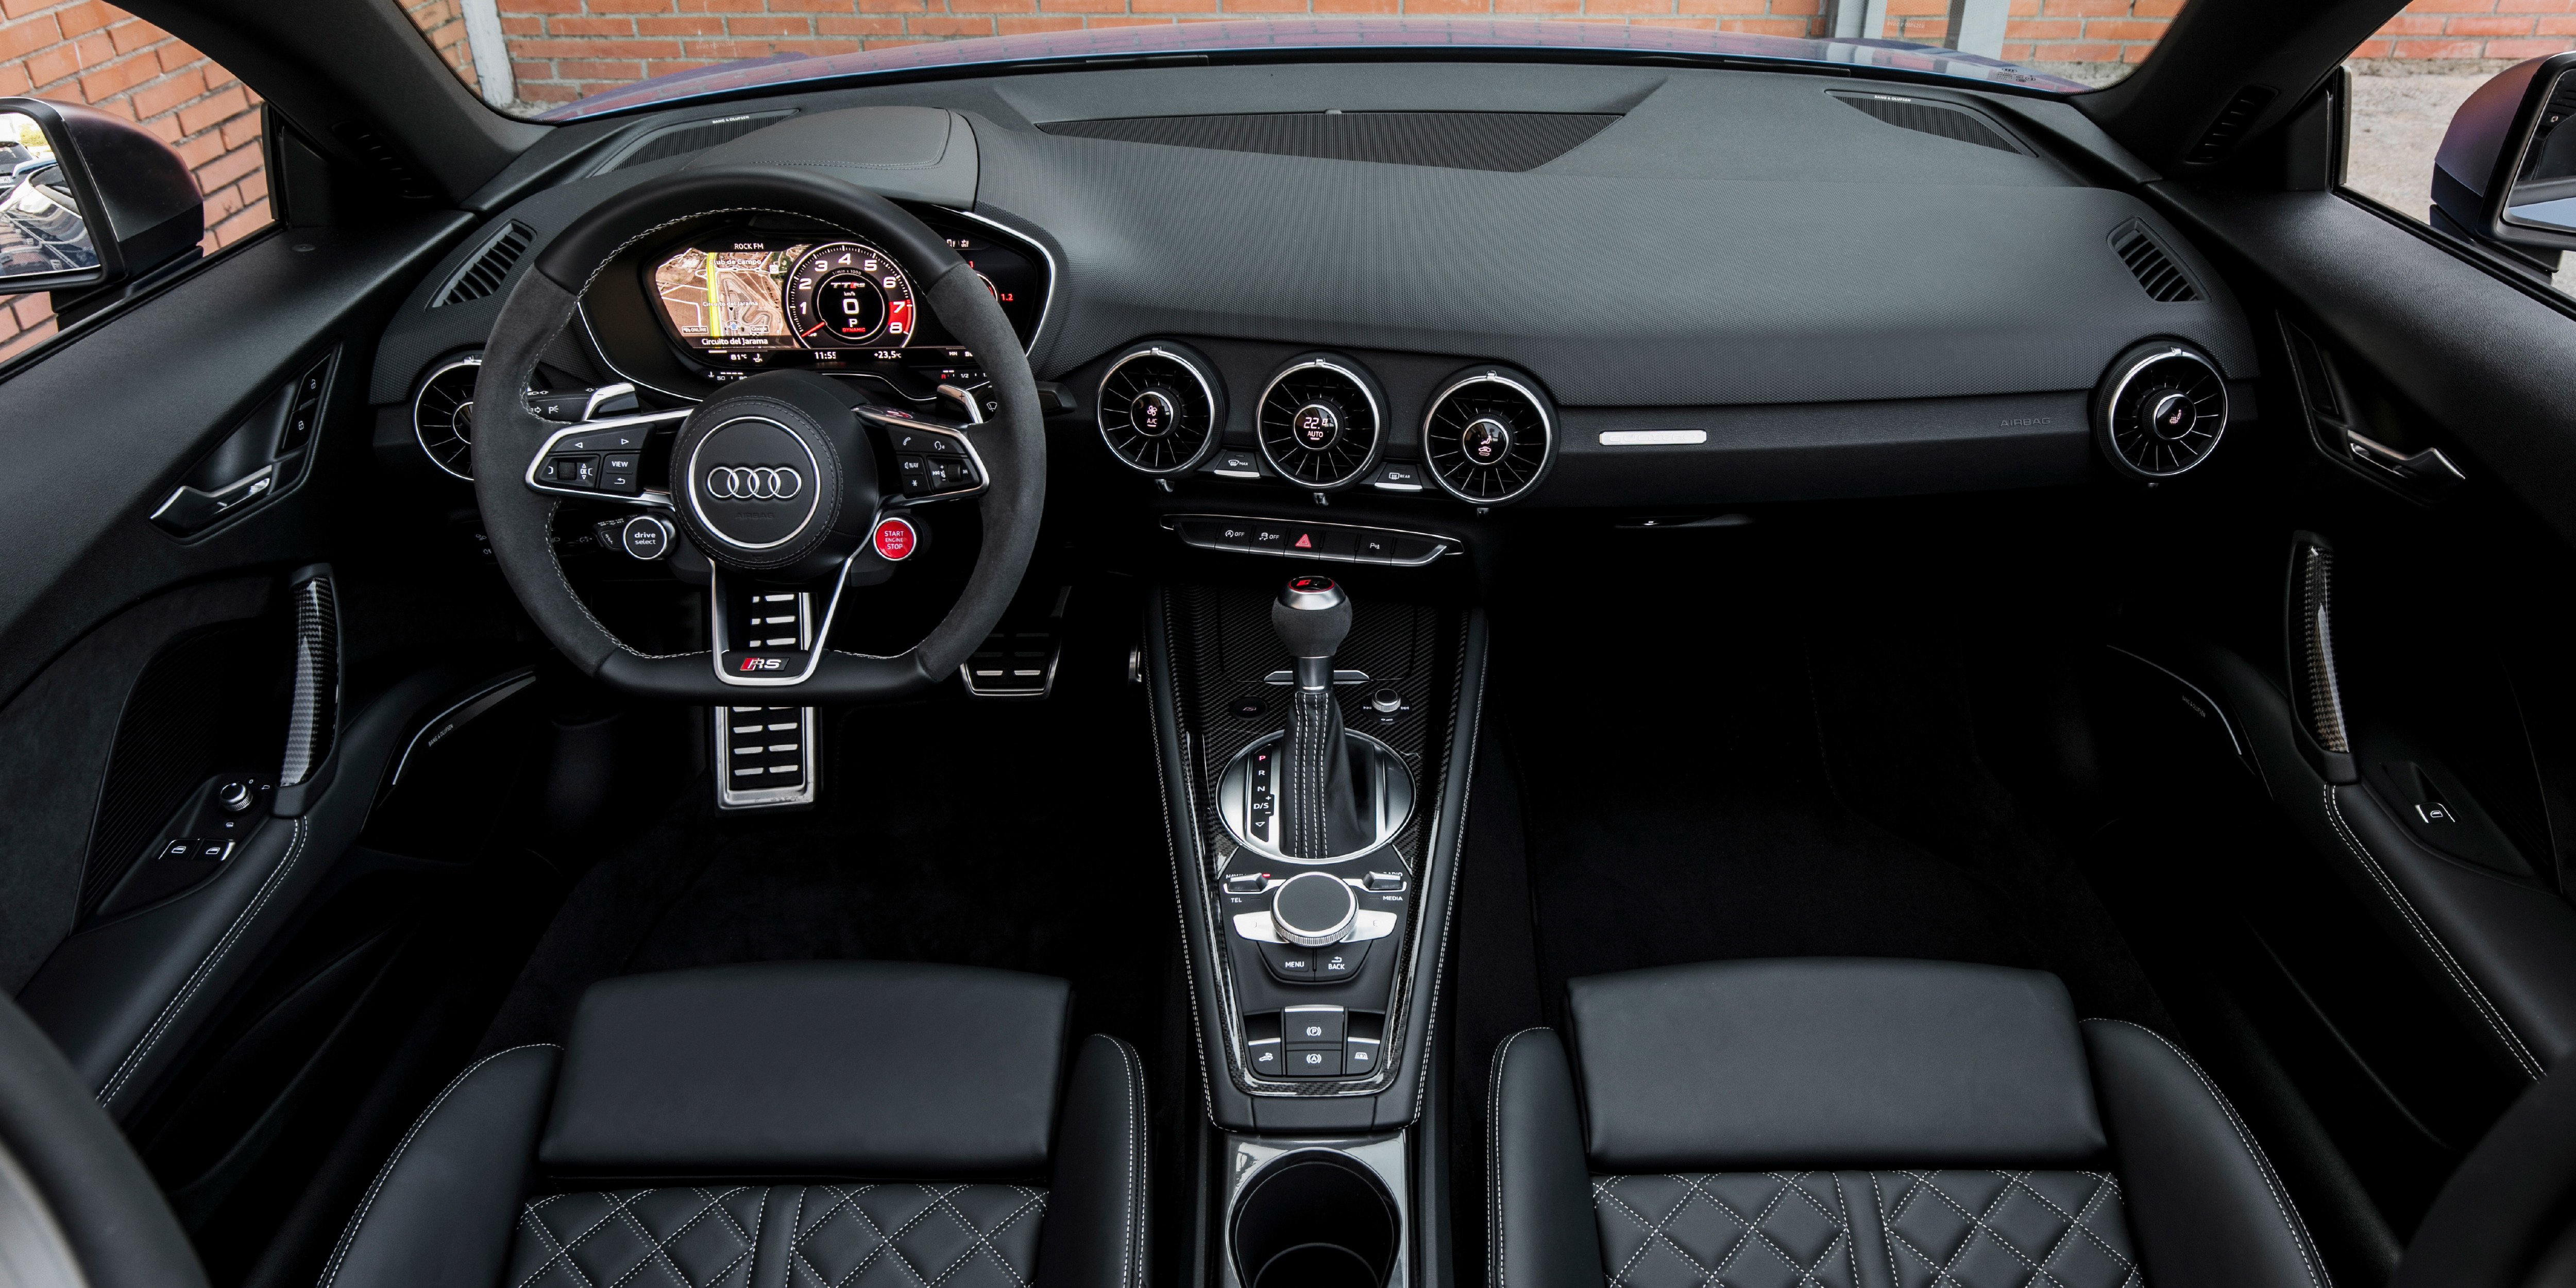 new audi tt rs in australia mid 2017 priced from around 145k photos caradvice. Black Bedroom Furniture Sets. Home Design Ideas